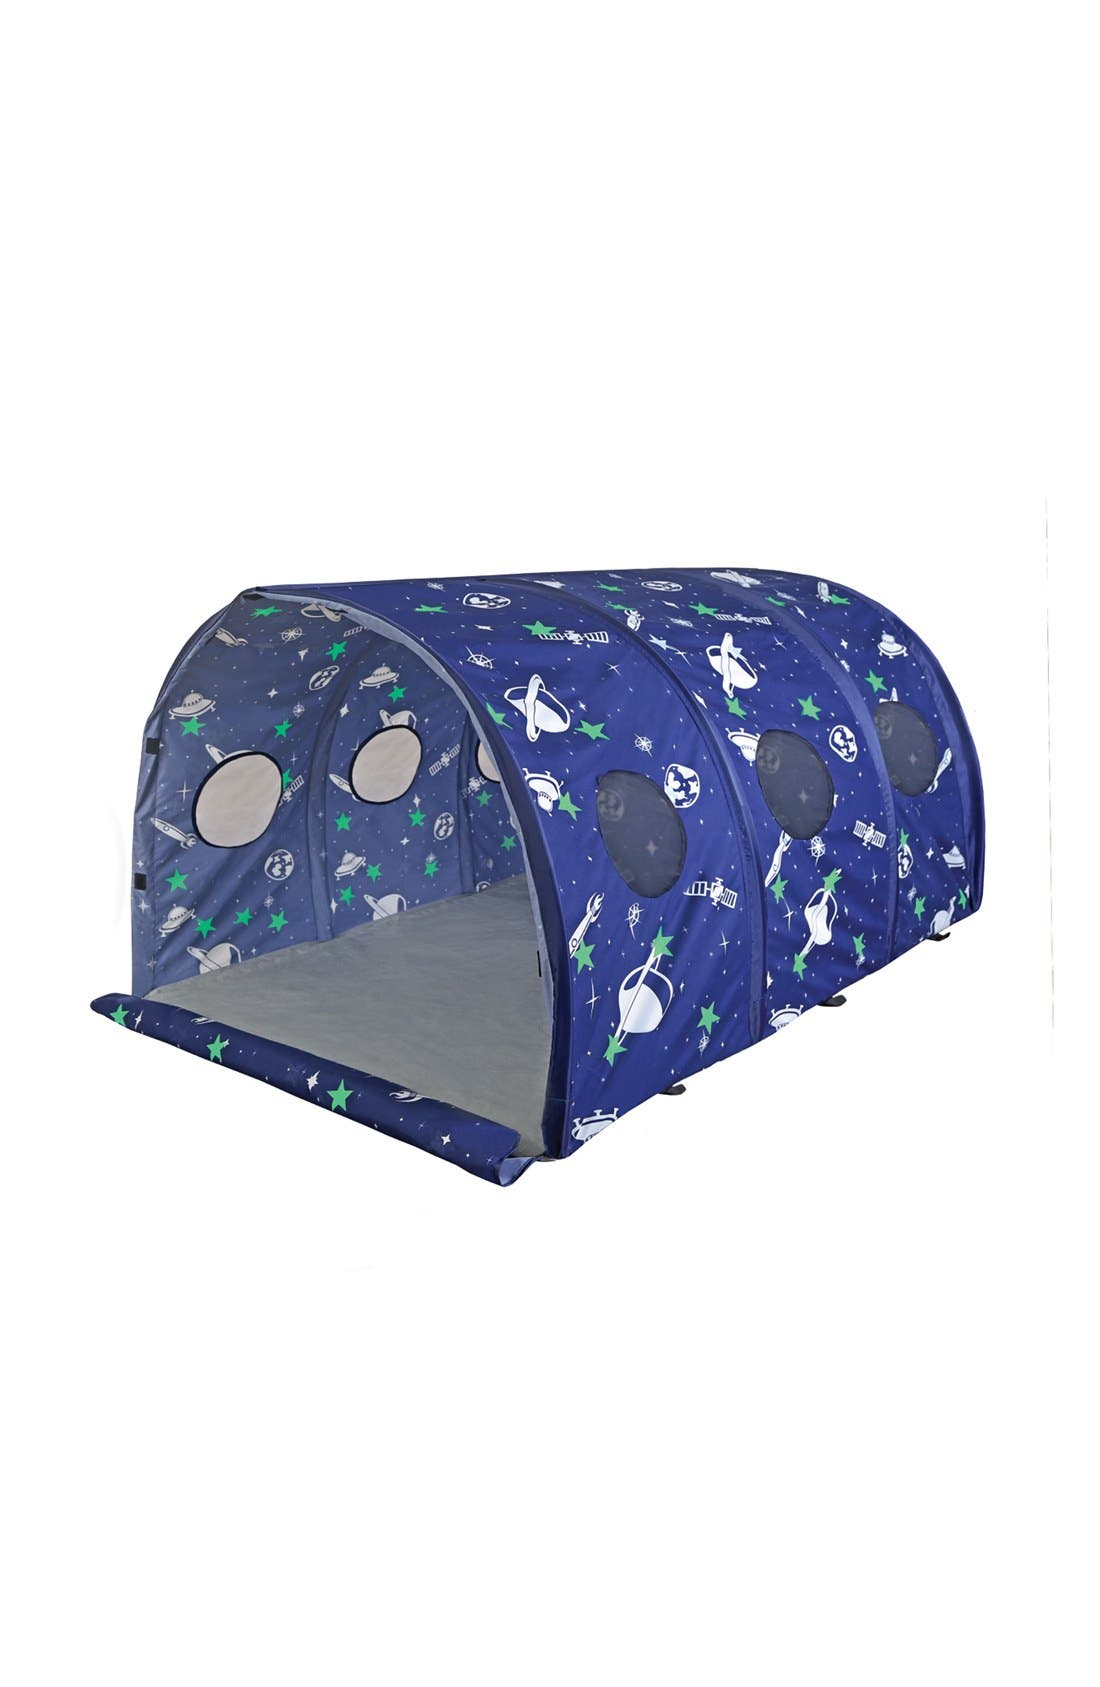 PACIFIC PLAY TENTS 'Space Capsule' Glow in the